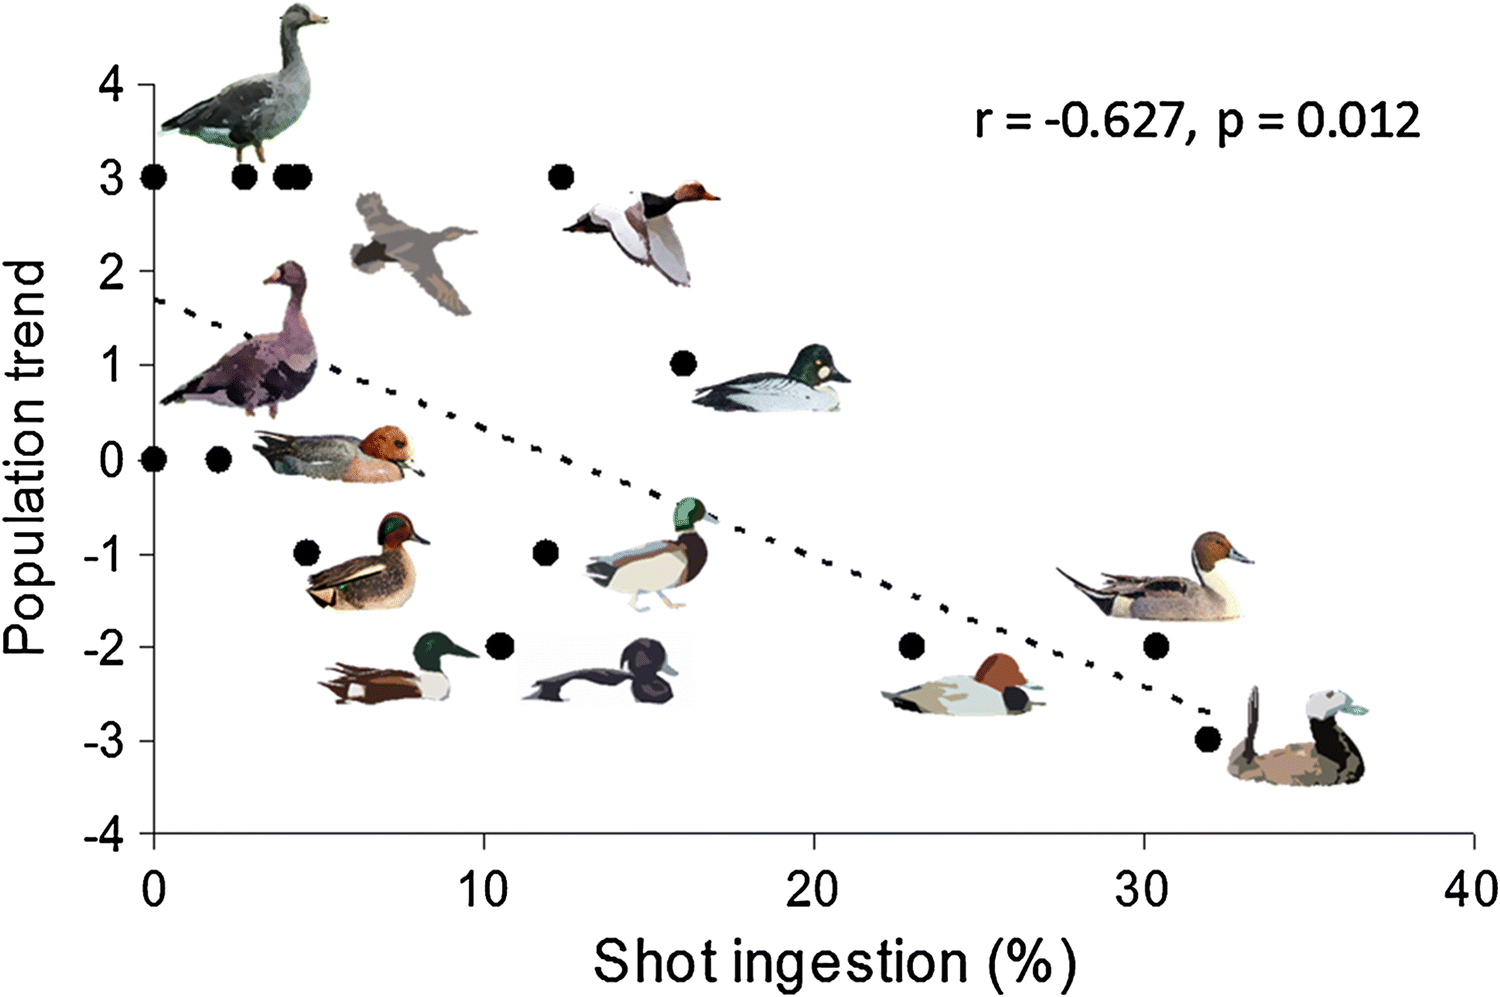 Effects of lead from ammunition on birds and other wildlife